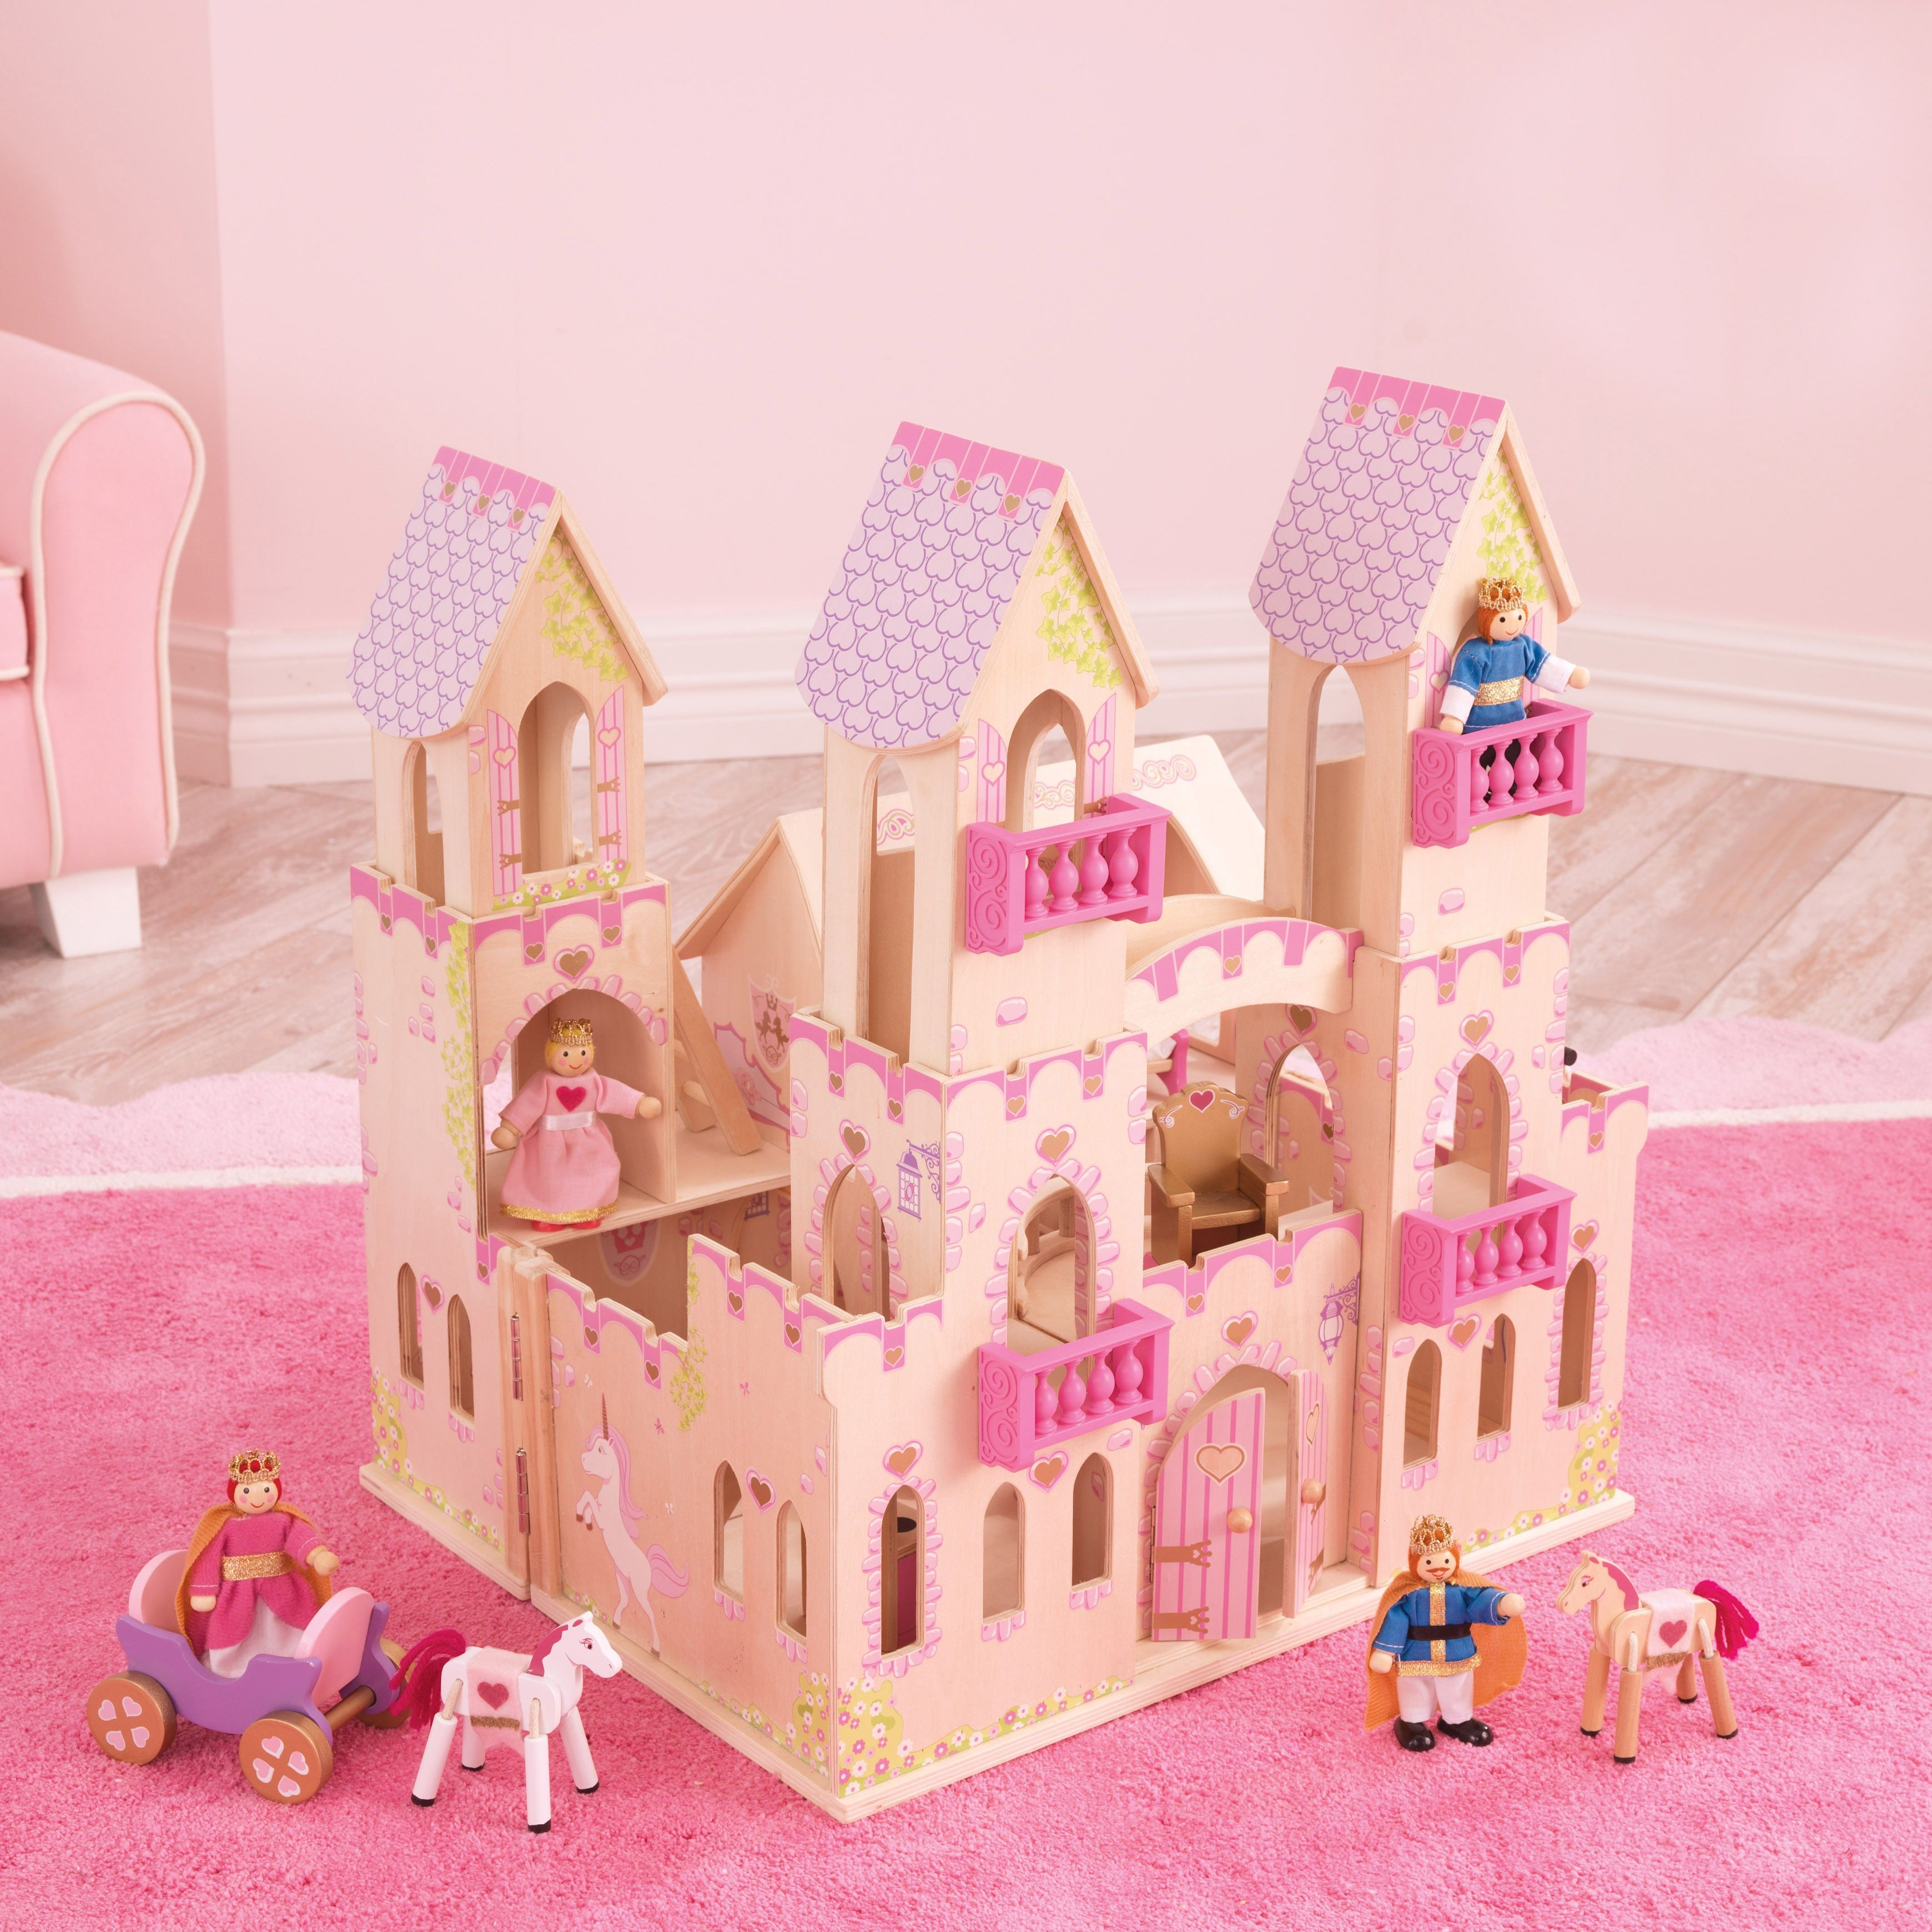 Pin by MiniCrafts on Mini ChunkyWooden Princess castle